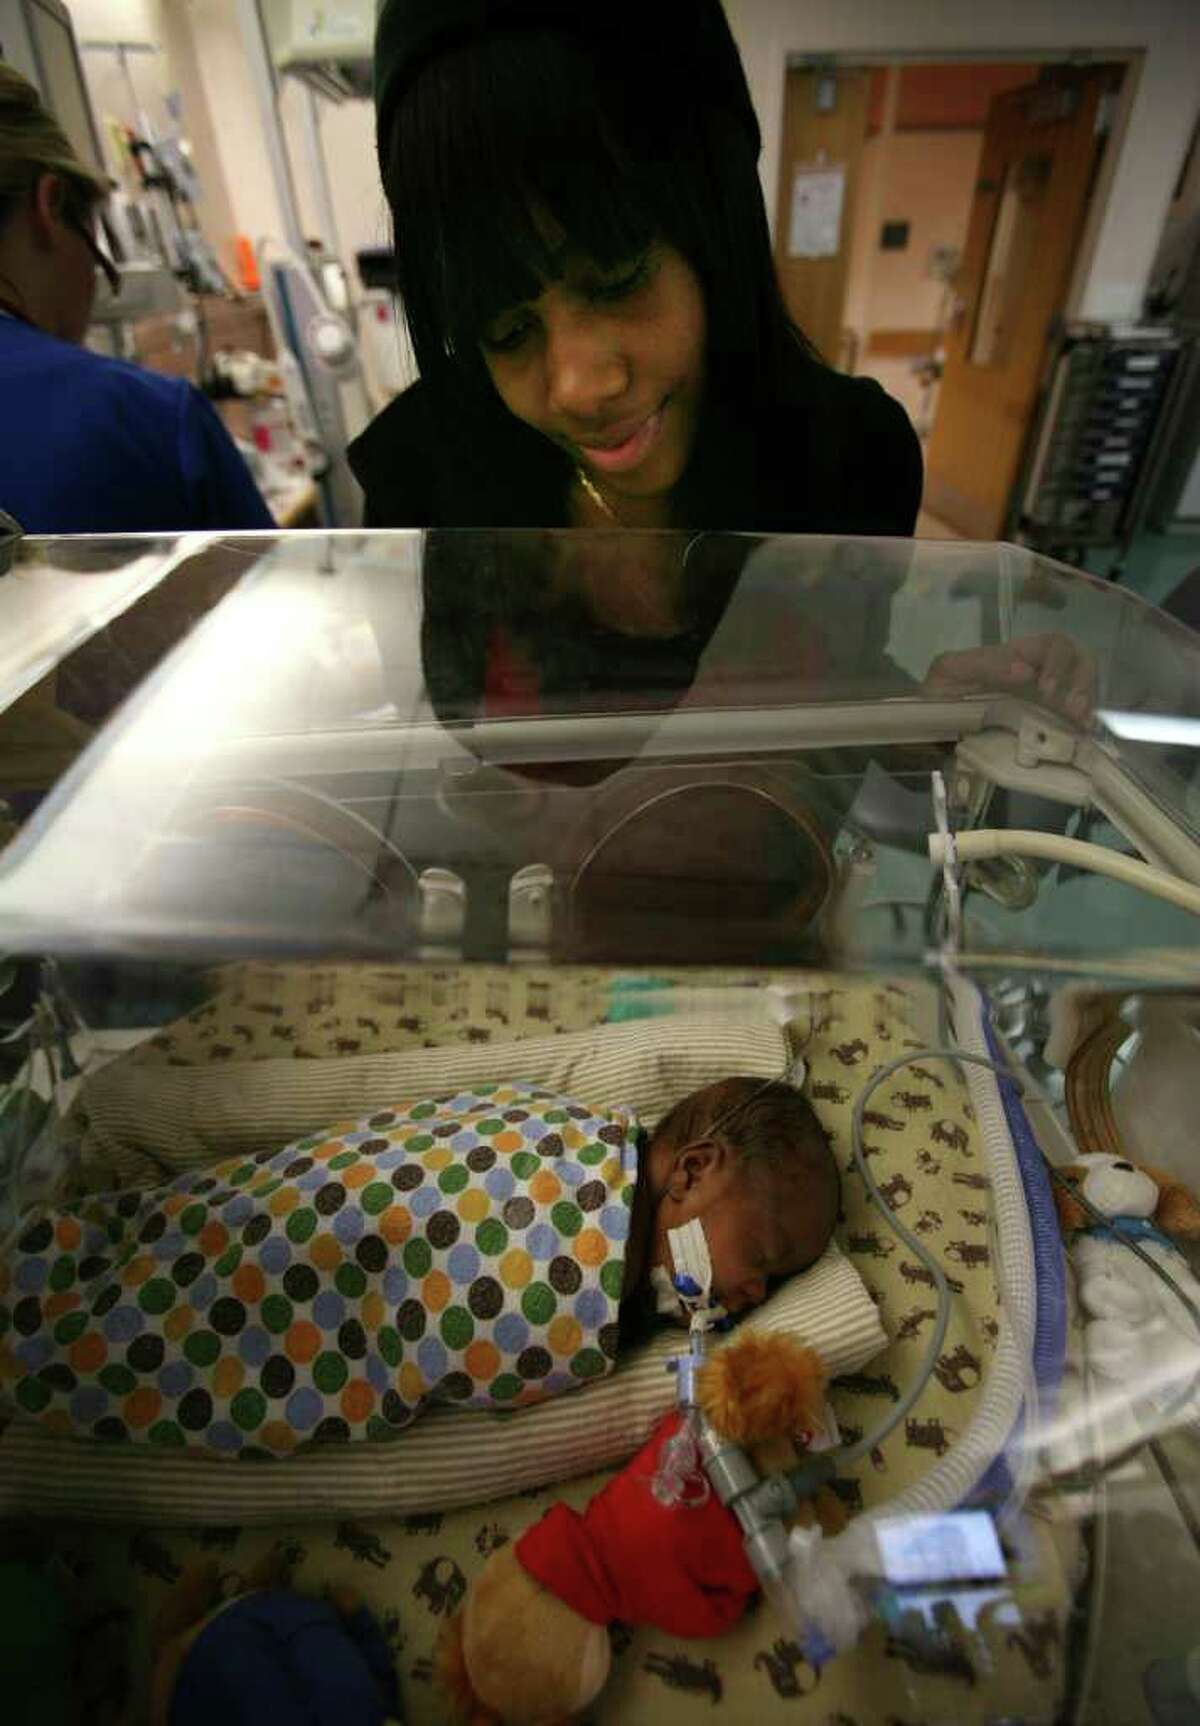 Brittany Bines of Norwalk visits with her son Camren Padgett, 3 months, in the newborn special care unit at Yale New Haven Hospital recently.